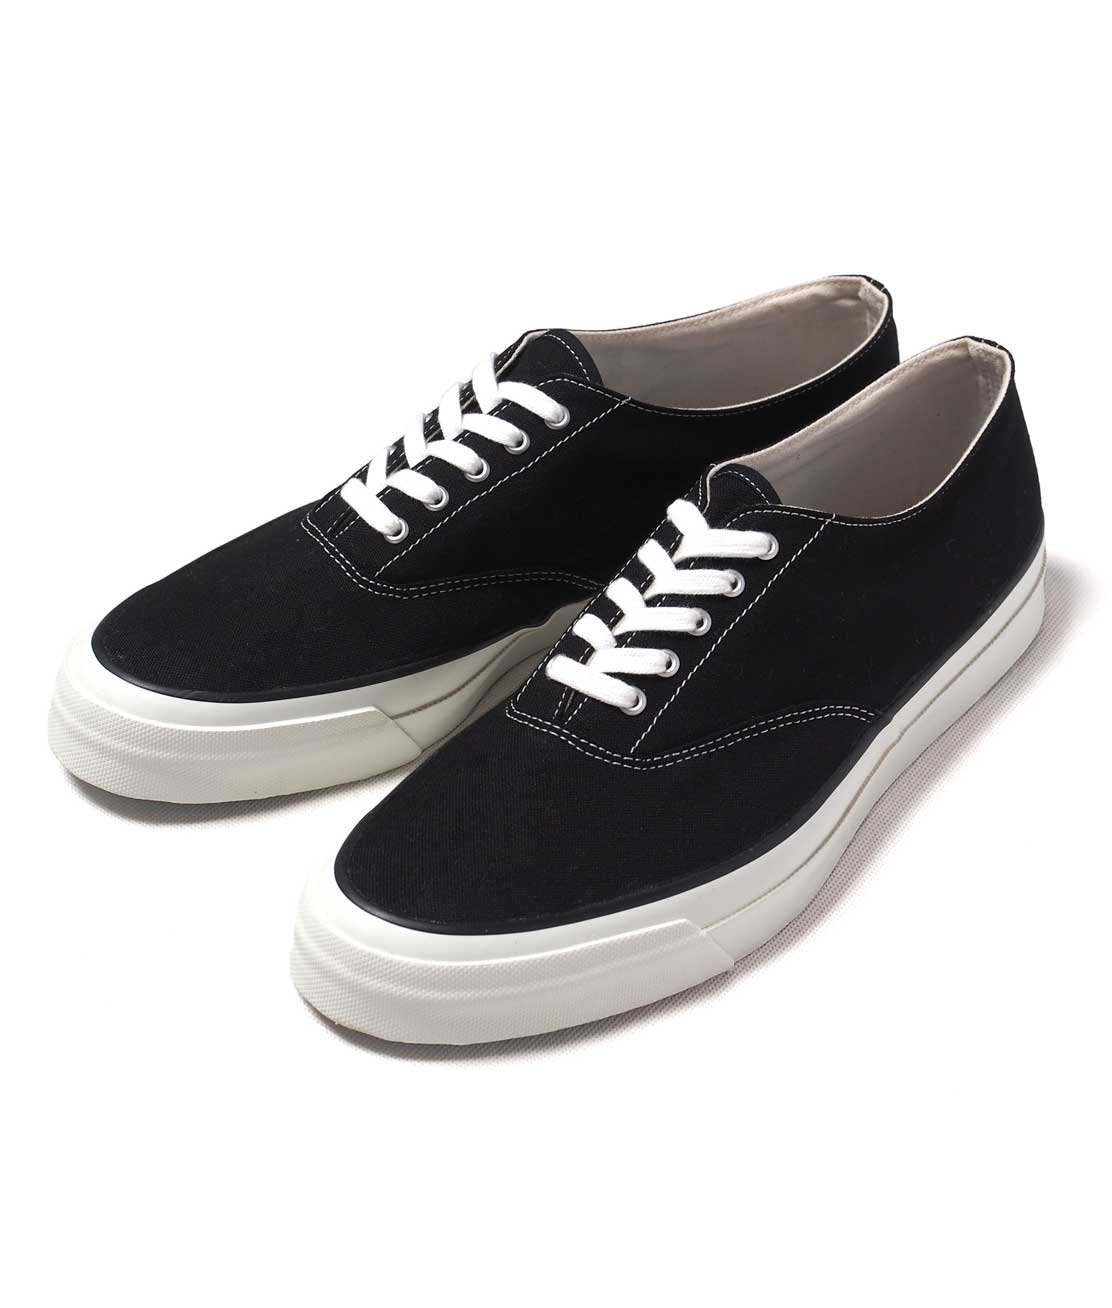 【asahi Deck】m014 Deck Shoes Black デッキシューズ 日本製 Hunky